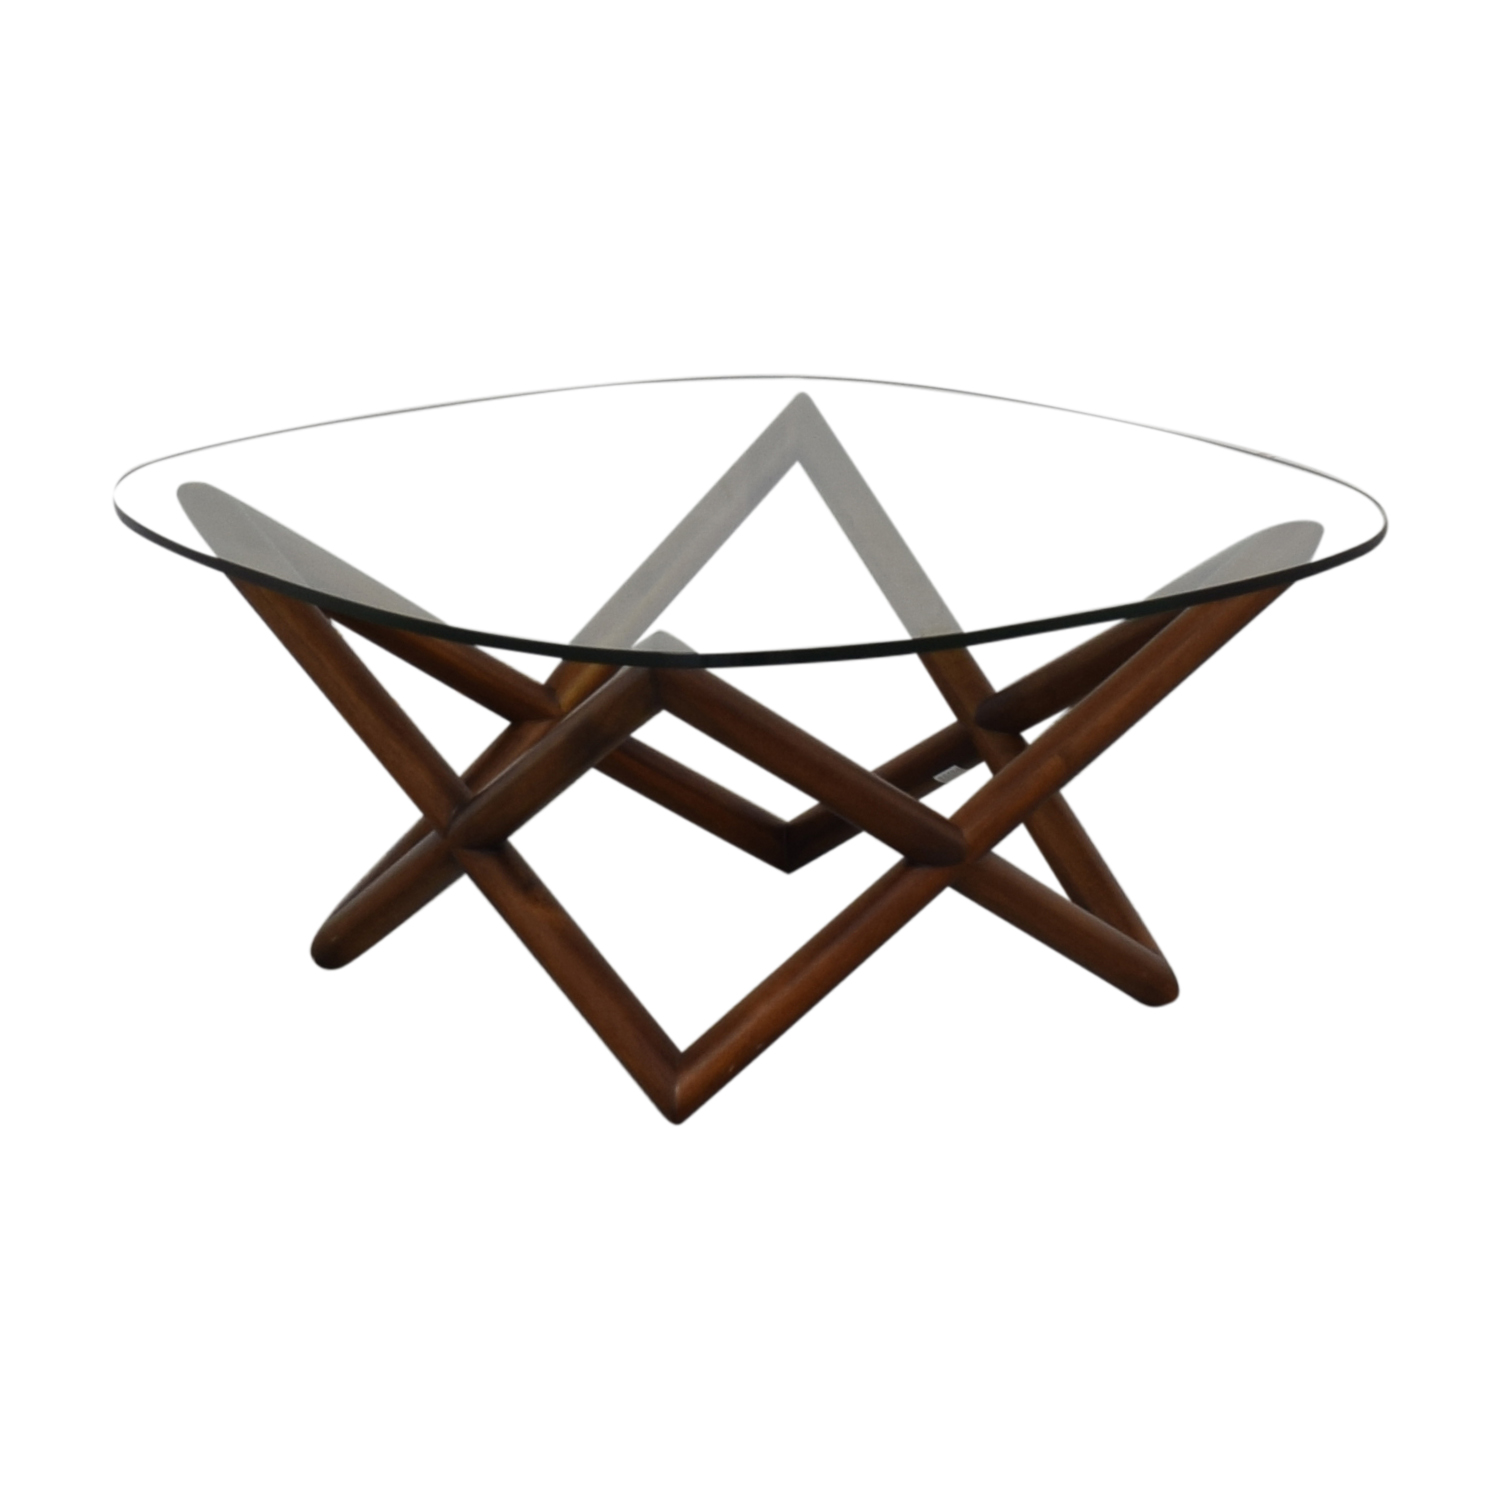 West Elm West Elm Spindle Coffee Table for sale